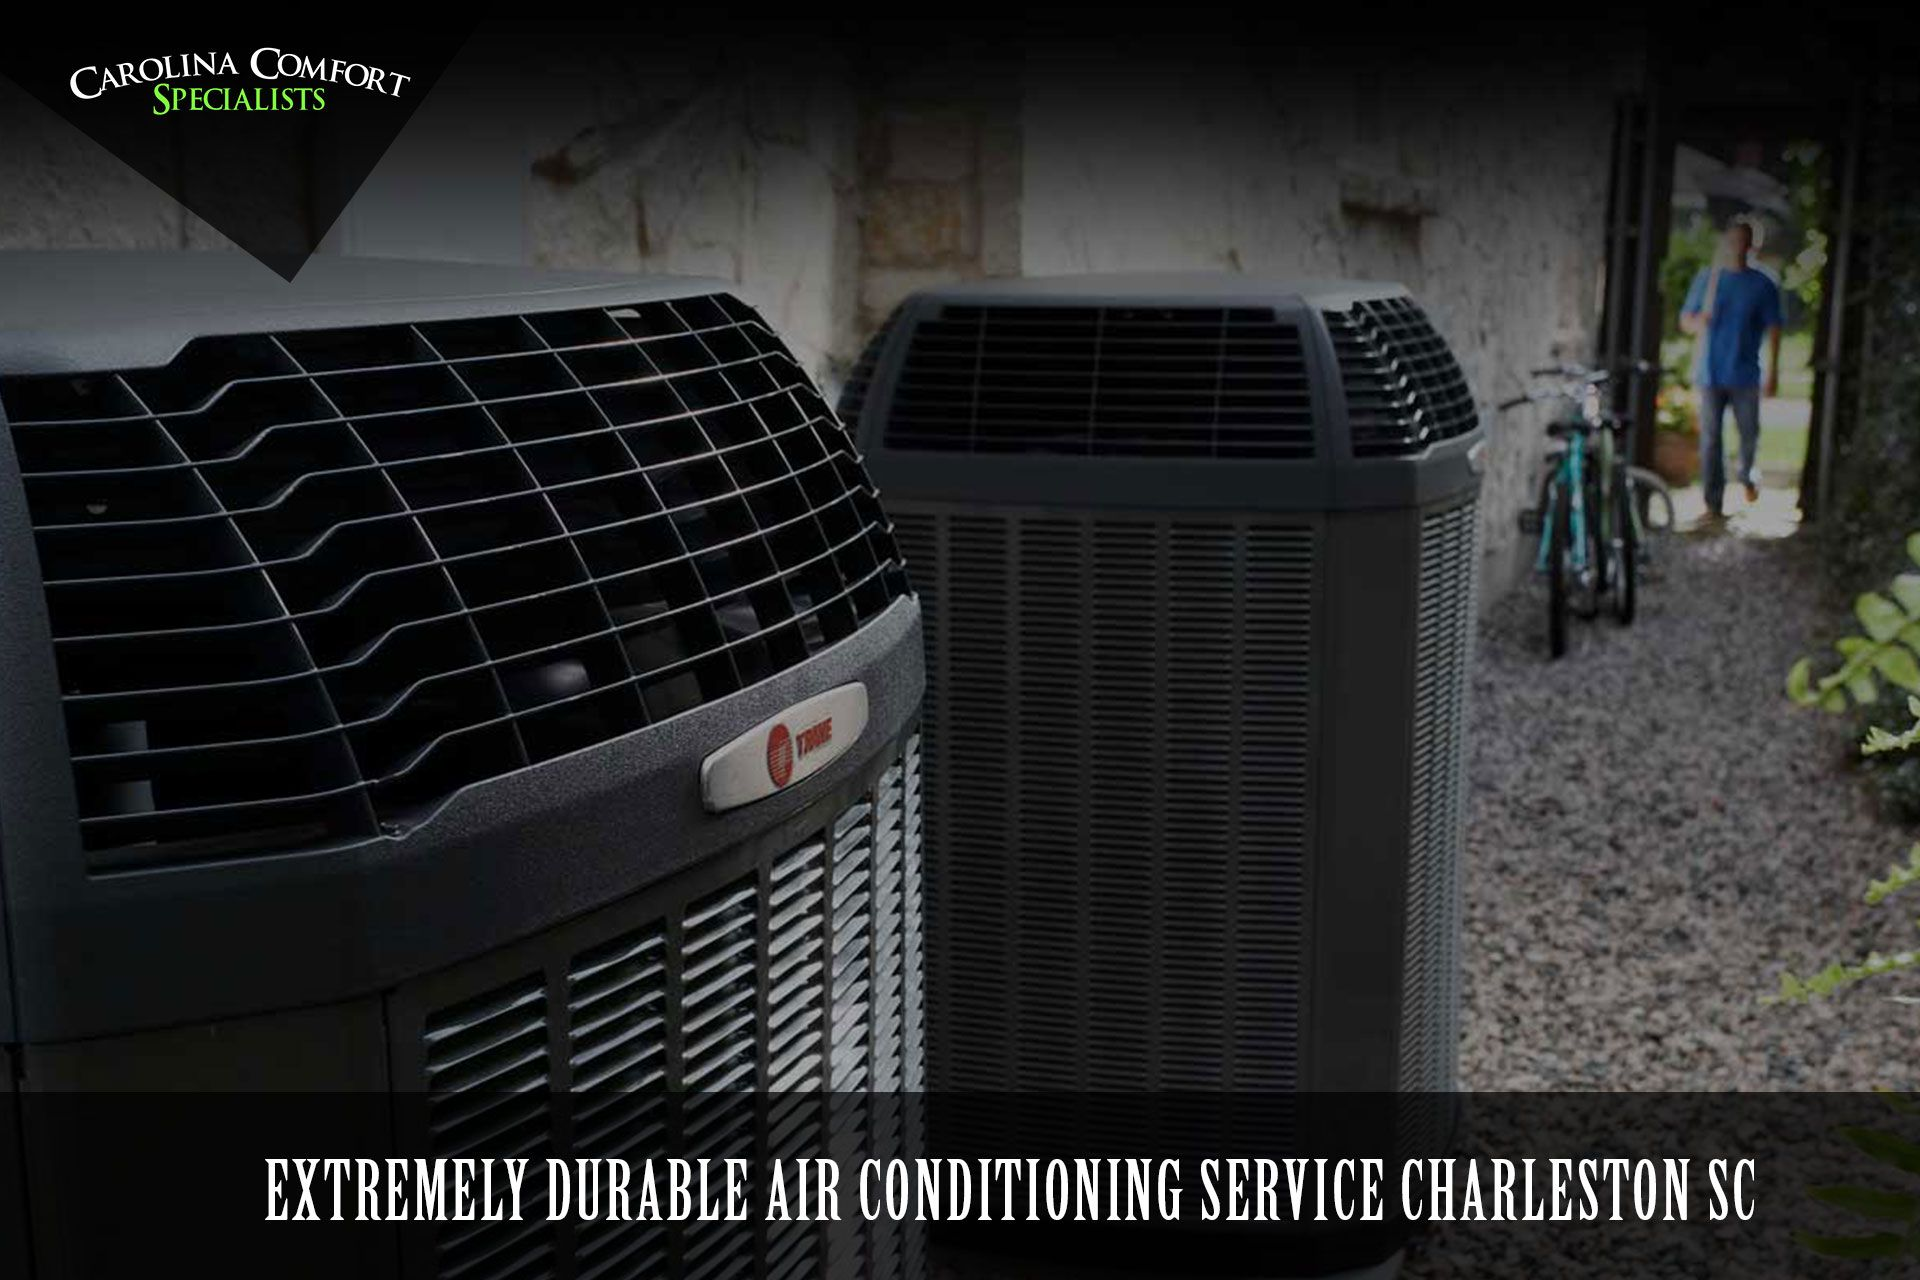 We'll help you selection an AC system that is perfect for